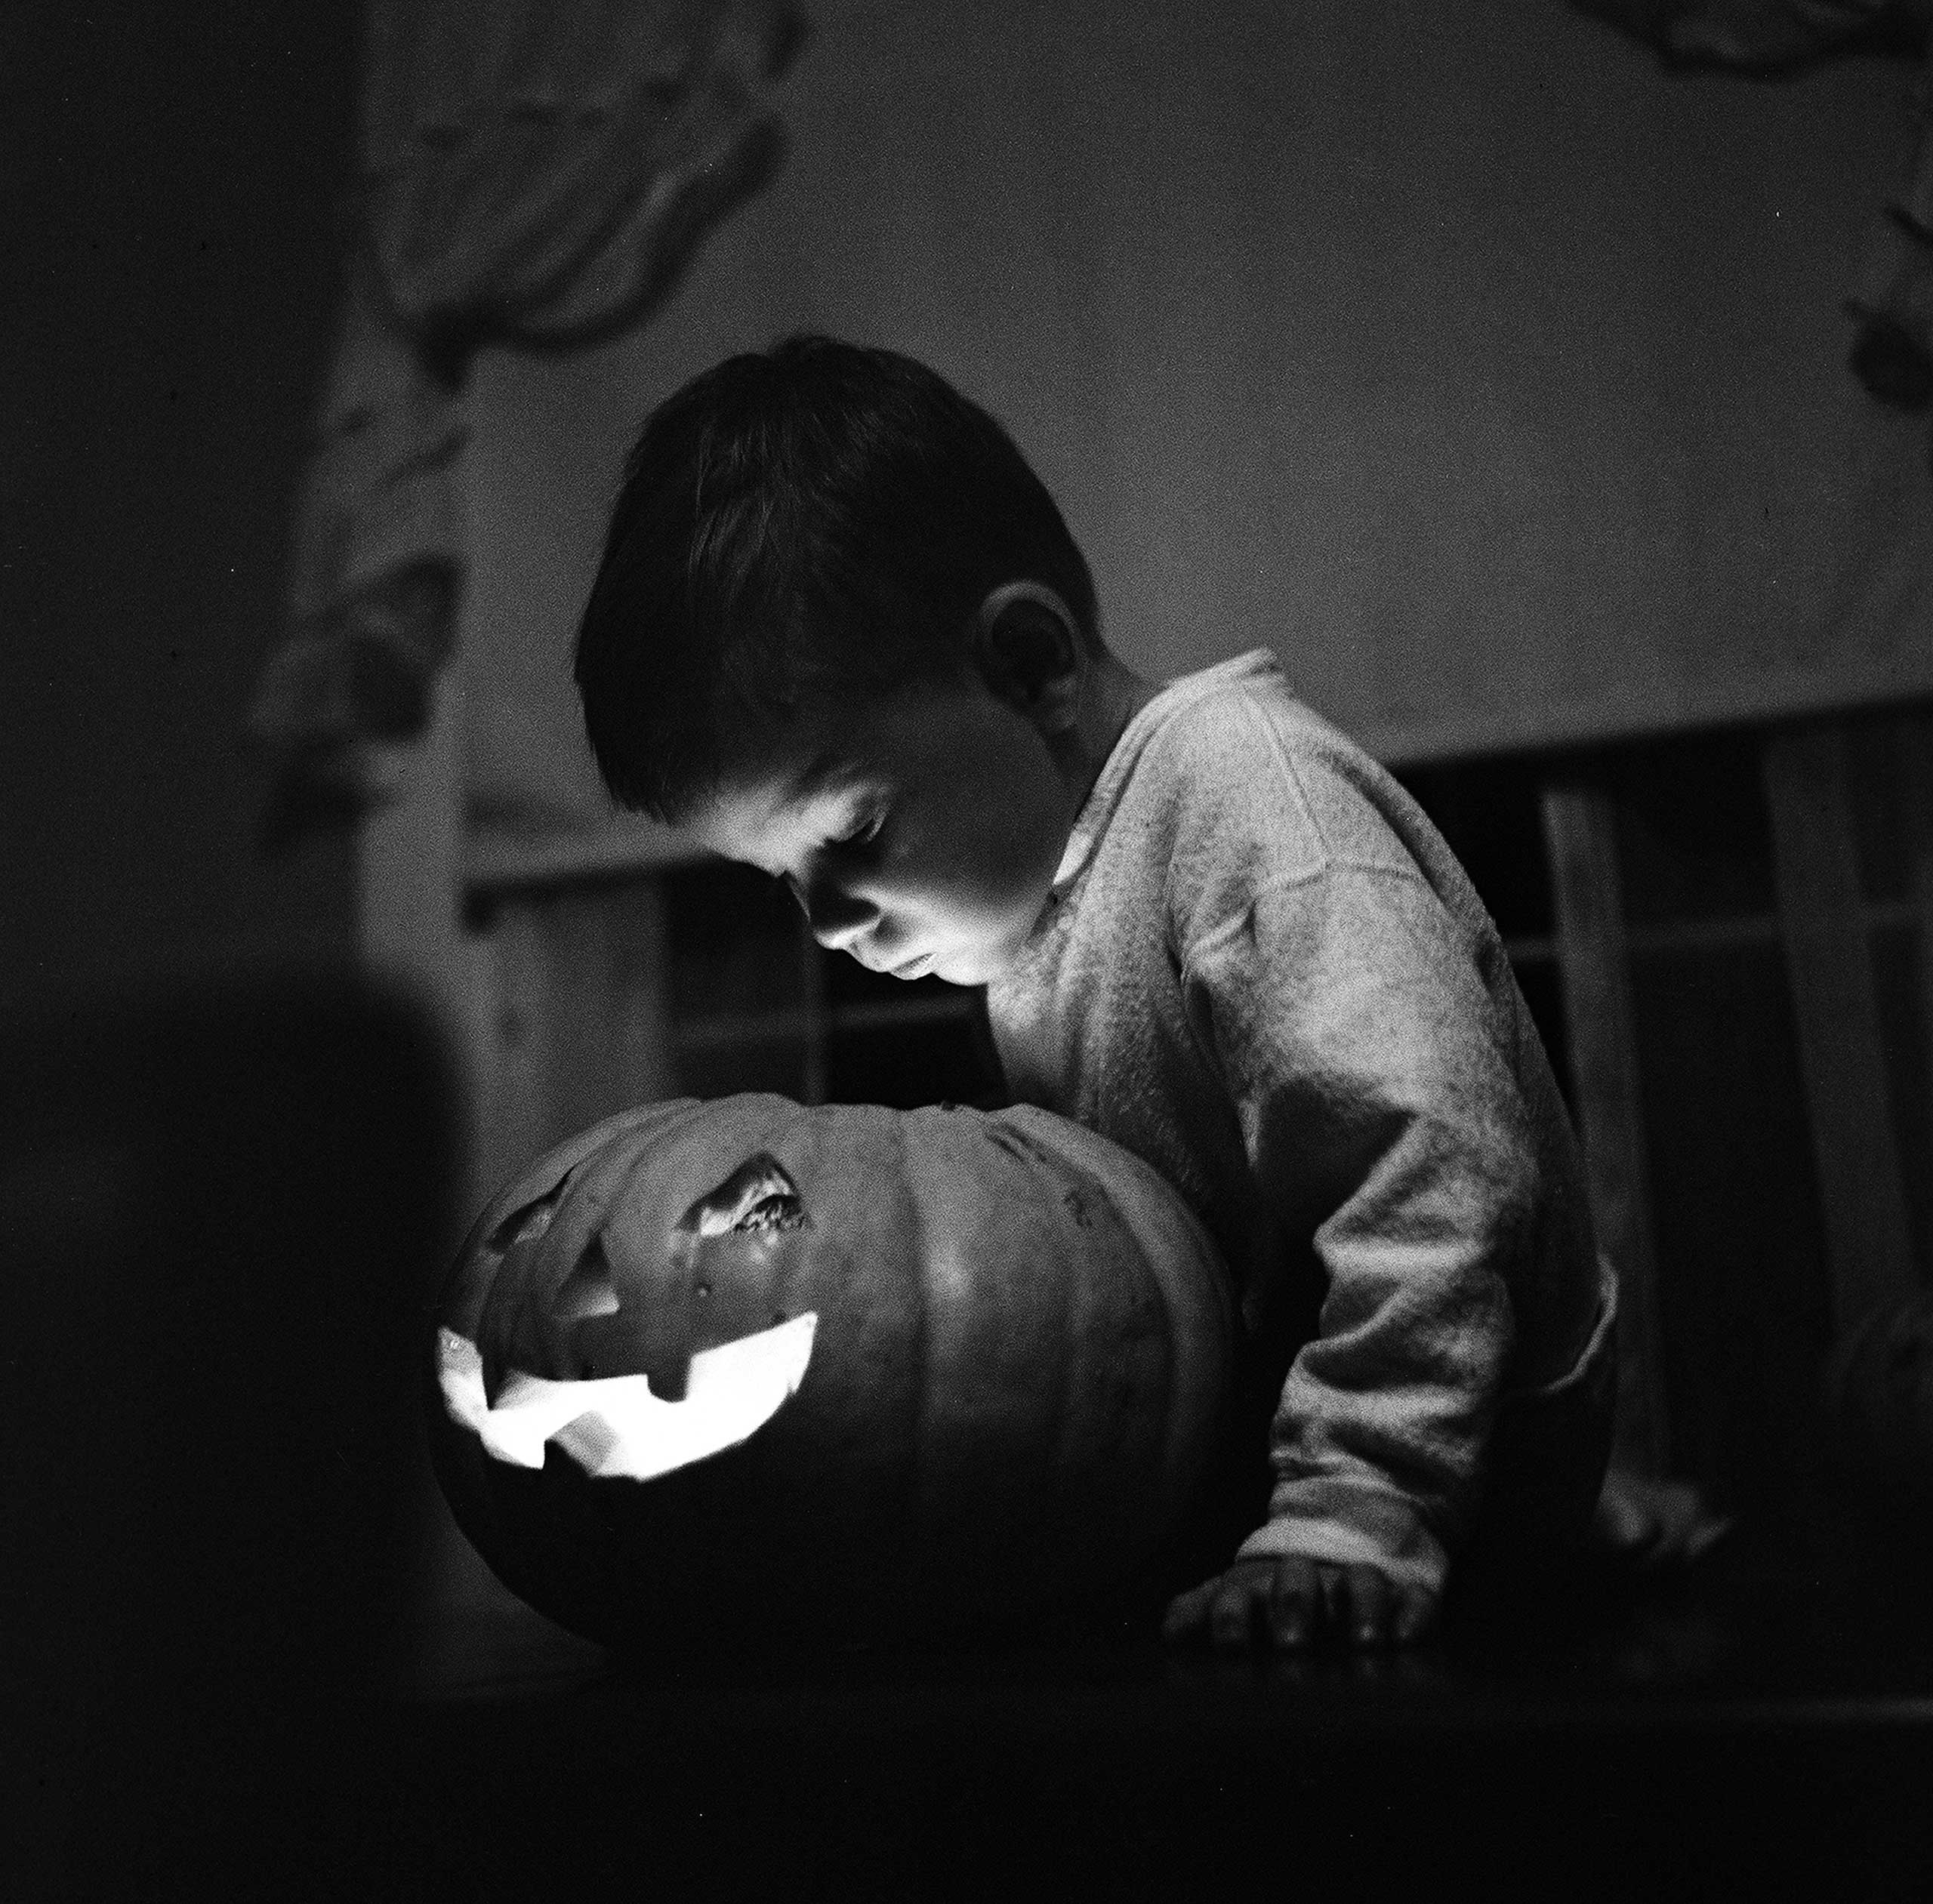 A young boy looks at a lit jack-o-lantern that he helped carve for Halloween, New York, 1949.